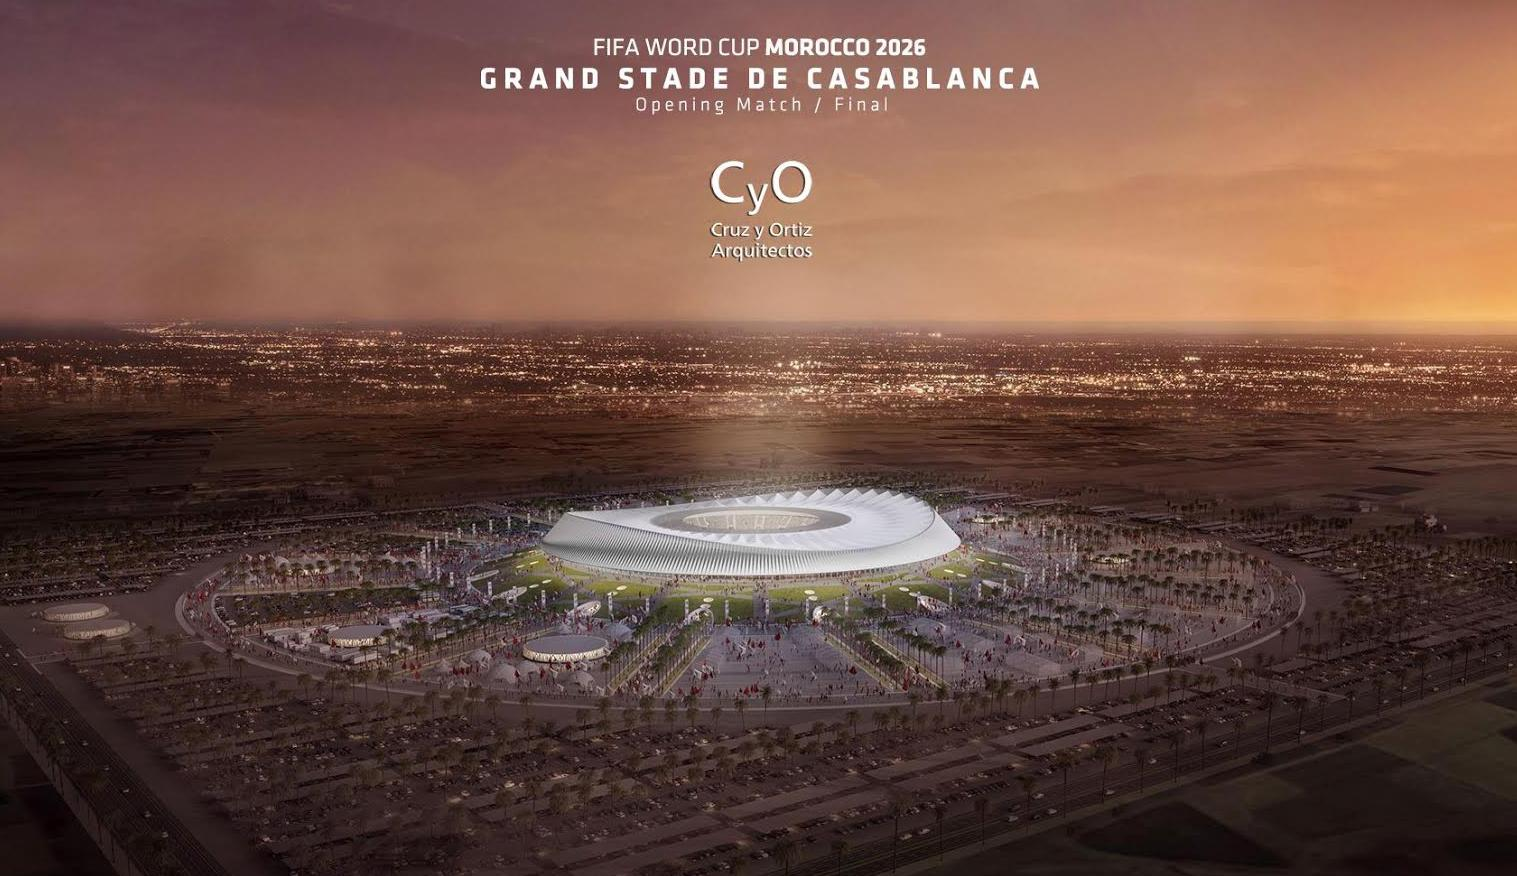 If the former wins the vote, Cruz y Ortiz's stadium will be constructed in Casablanca, and will host the opening match and the final of the World Cup / Cruz y Ortiz